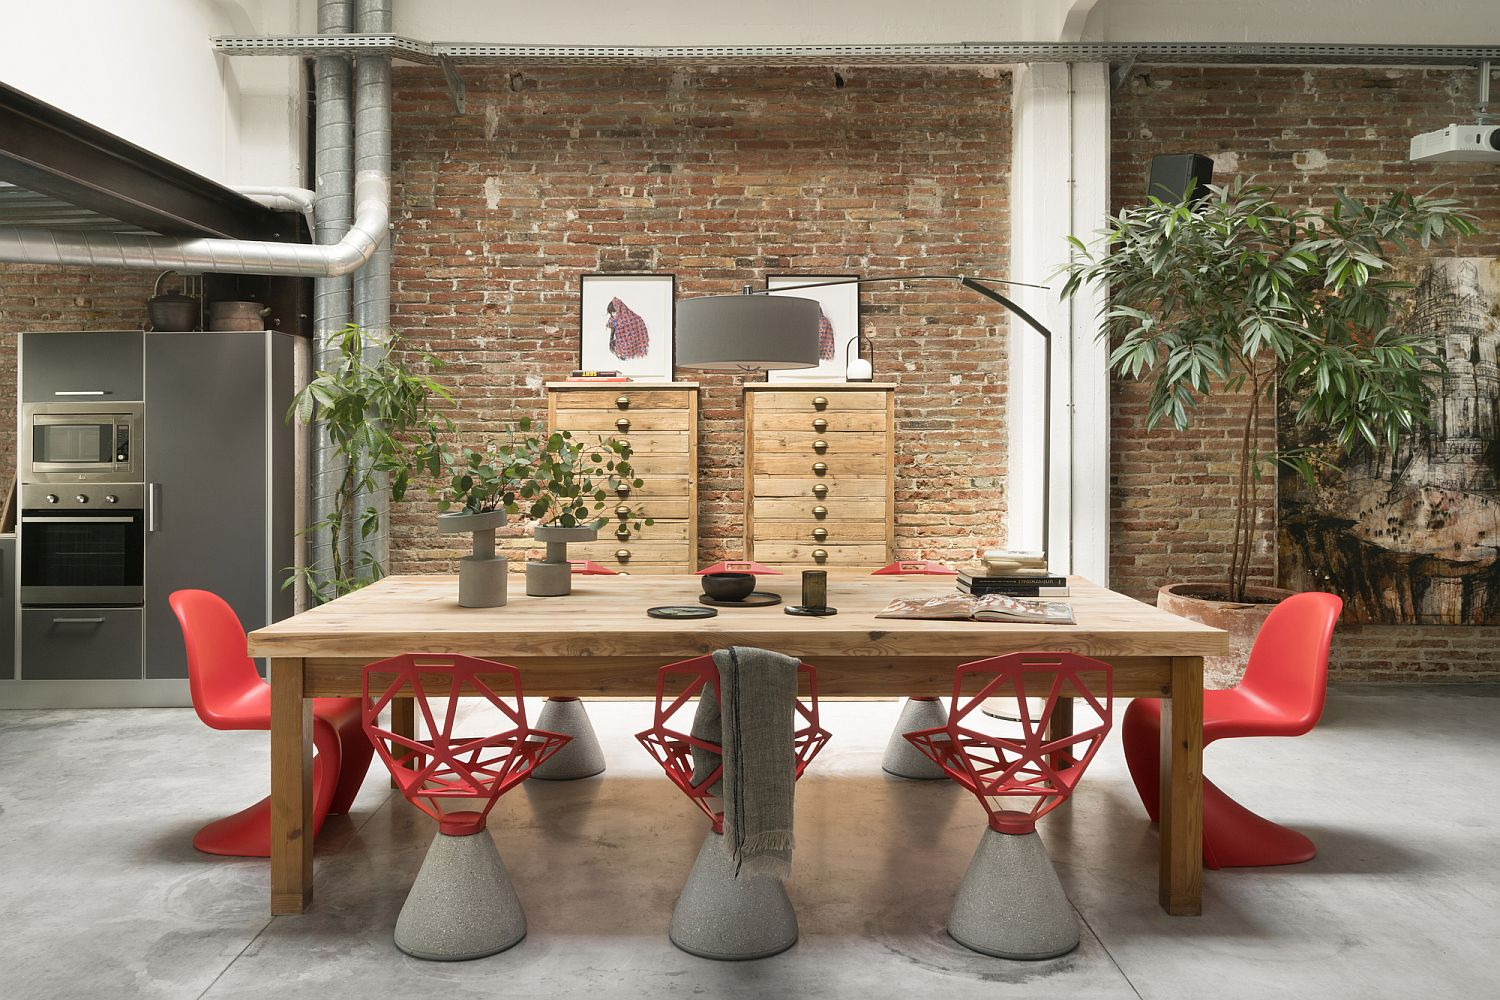 Chairs in red add color to an otherwise neutral dining space with brick wall